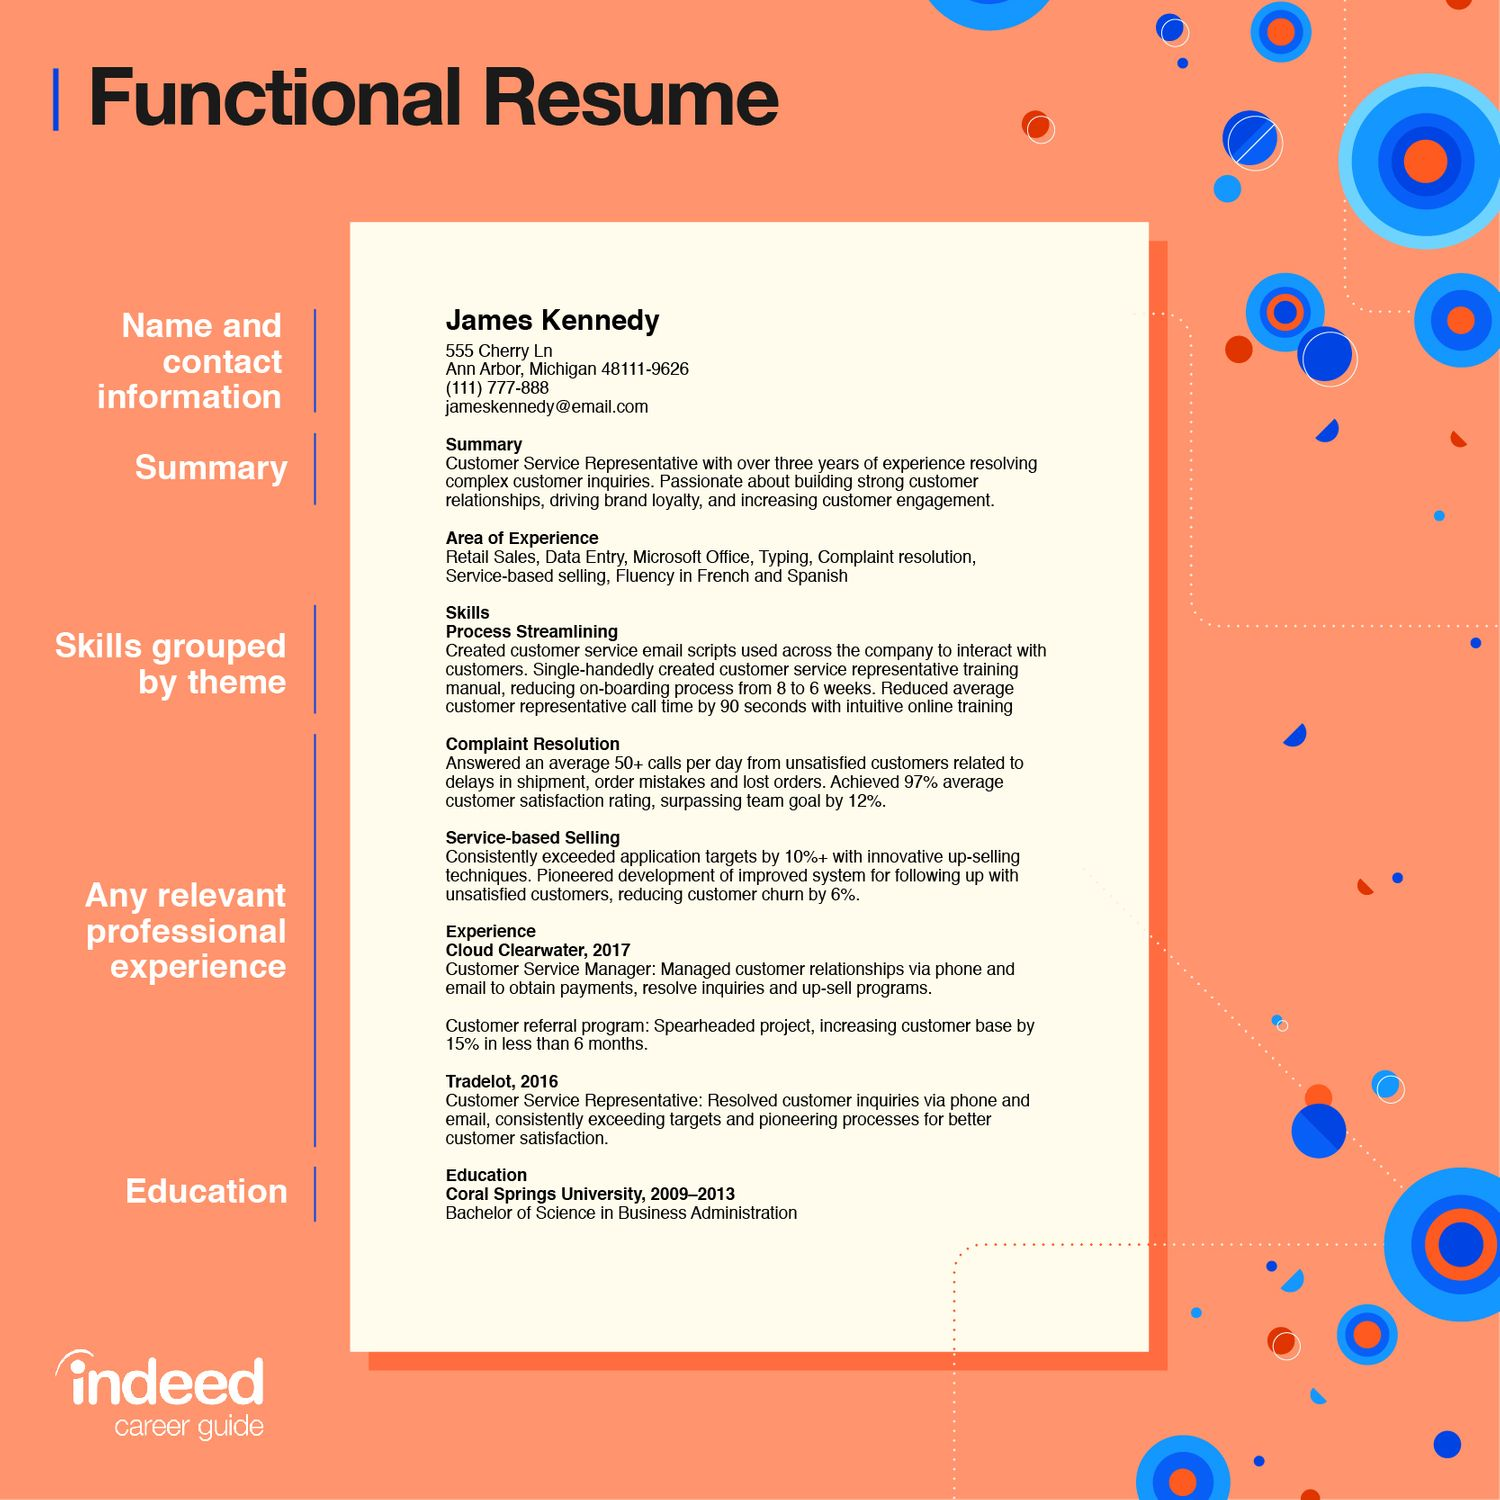 best skills to include on resume with examples indeed that are good for resized shoprite Resume Skills That Are Good For A Resume